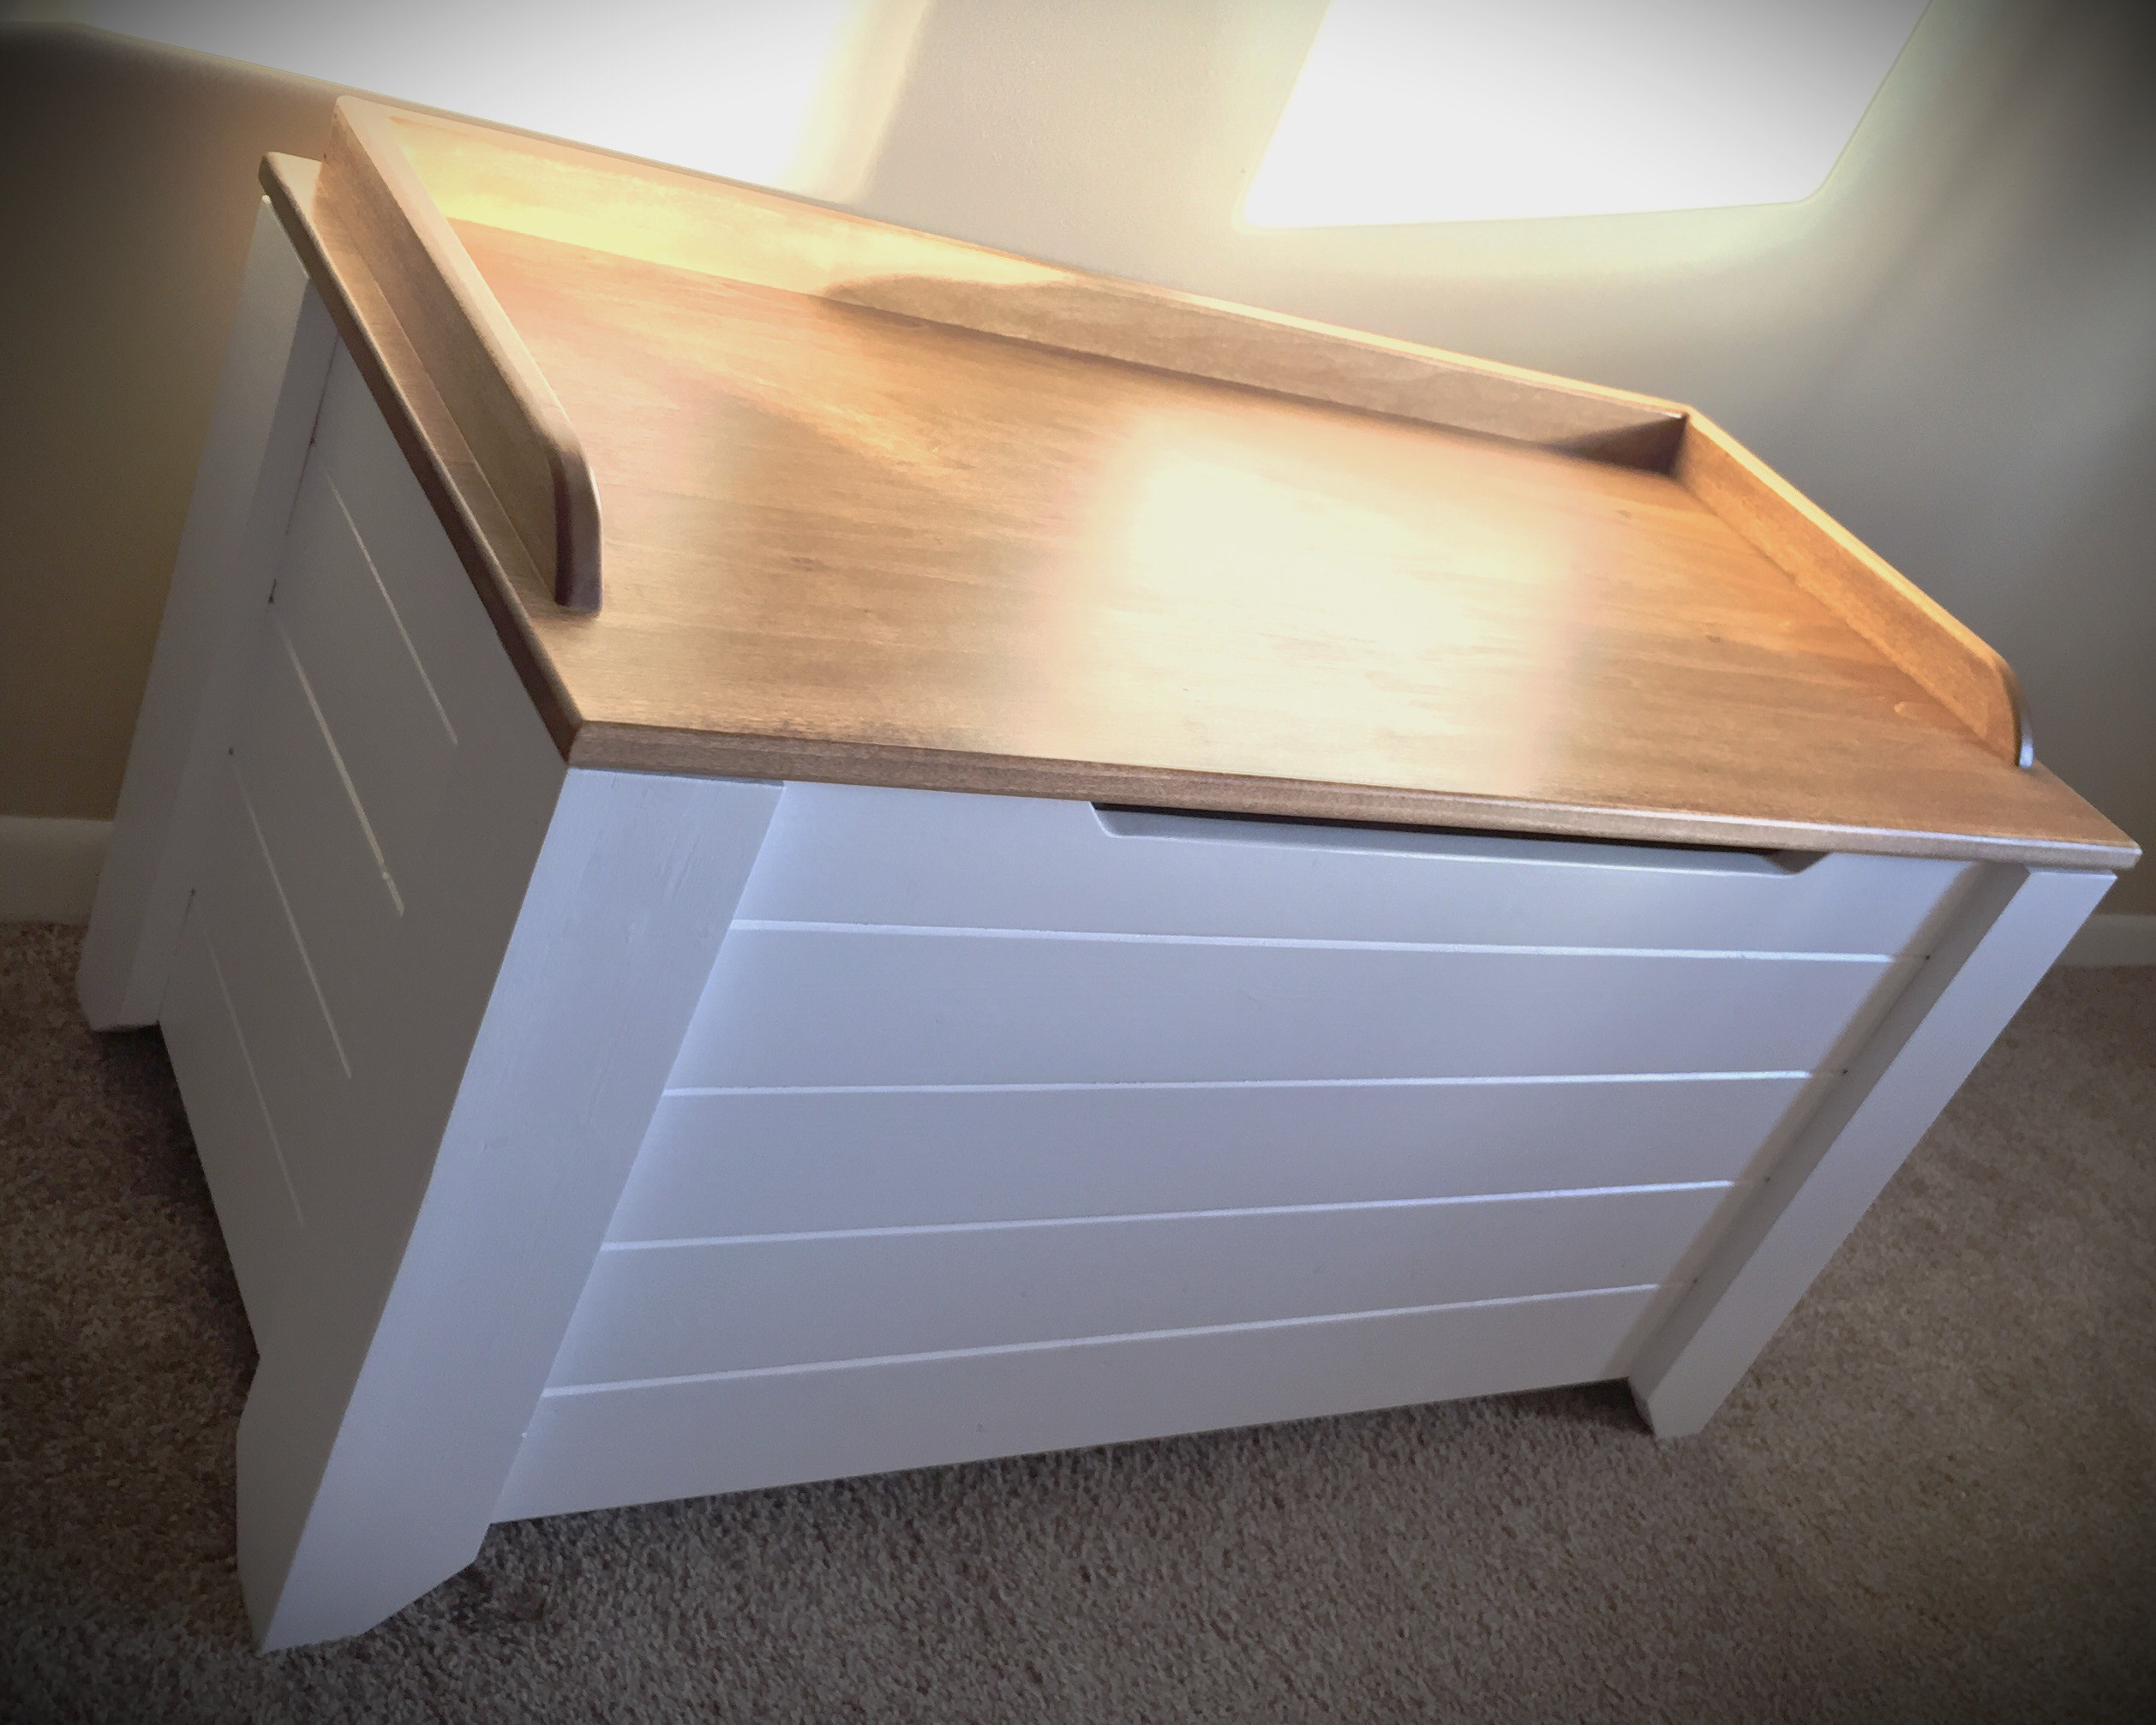 Best ideas about DIY Toy Chest Plans . Save or Pin Farmhouse Style Toy Box Blanket Chest Now.